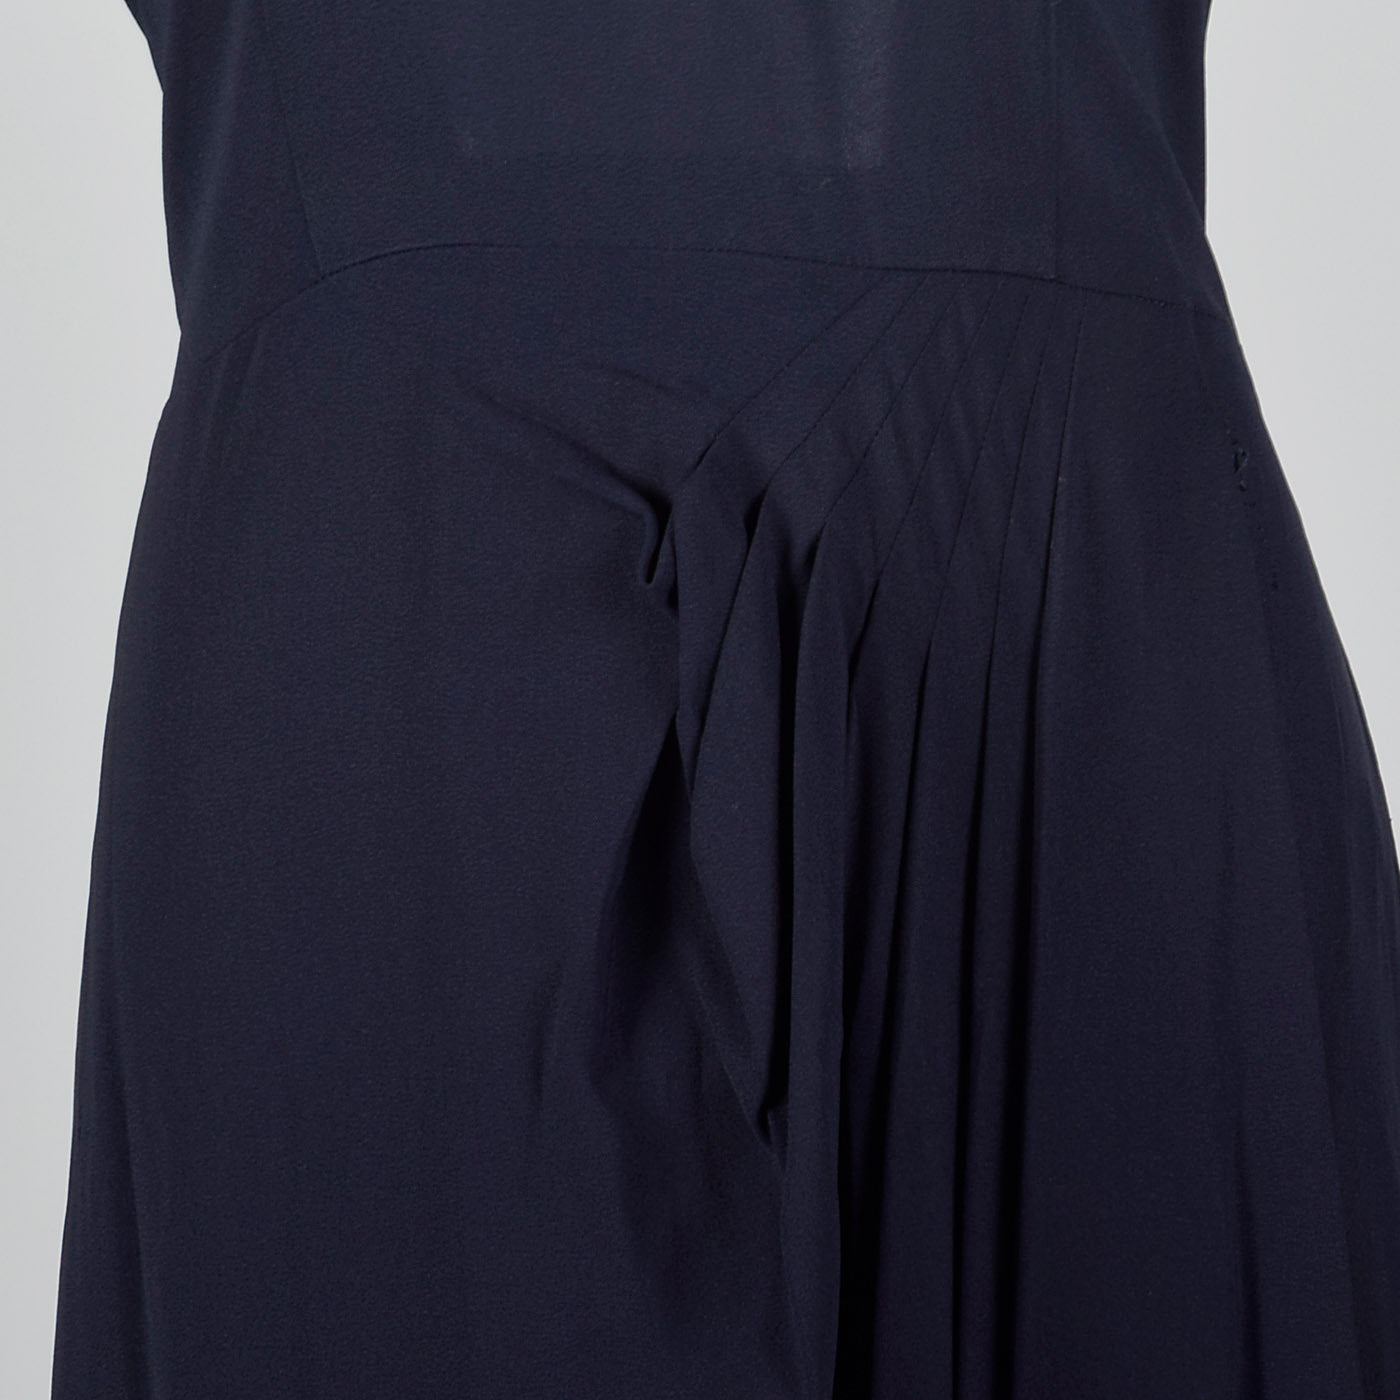 1950s Blue Rayon Dress with Lace Illusion Neckline